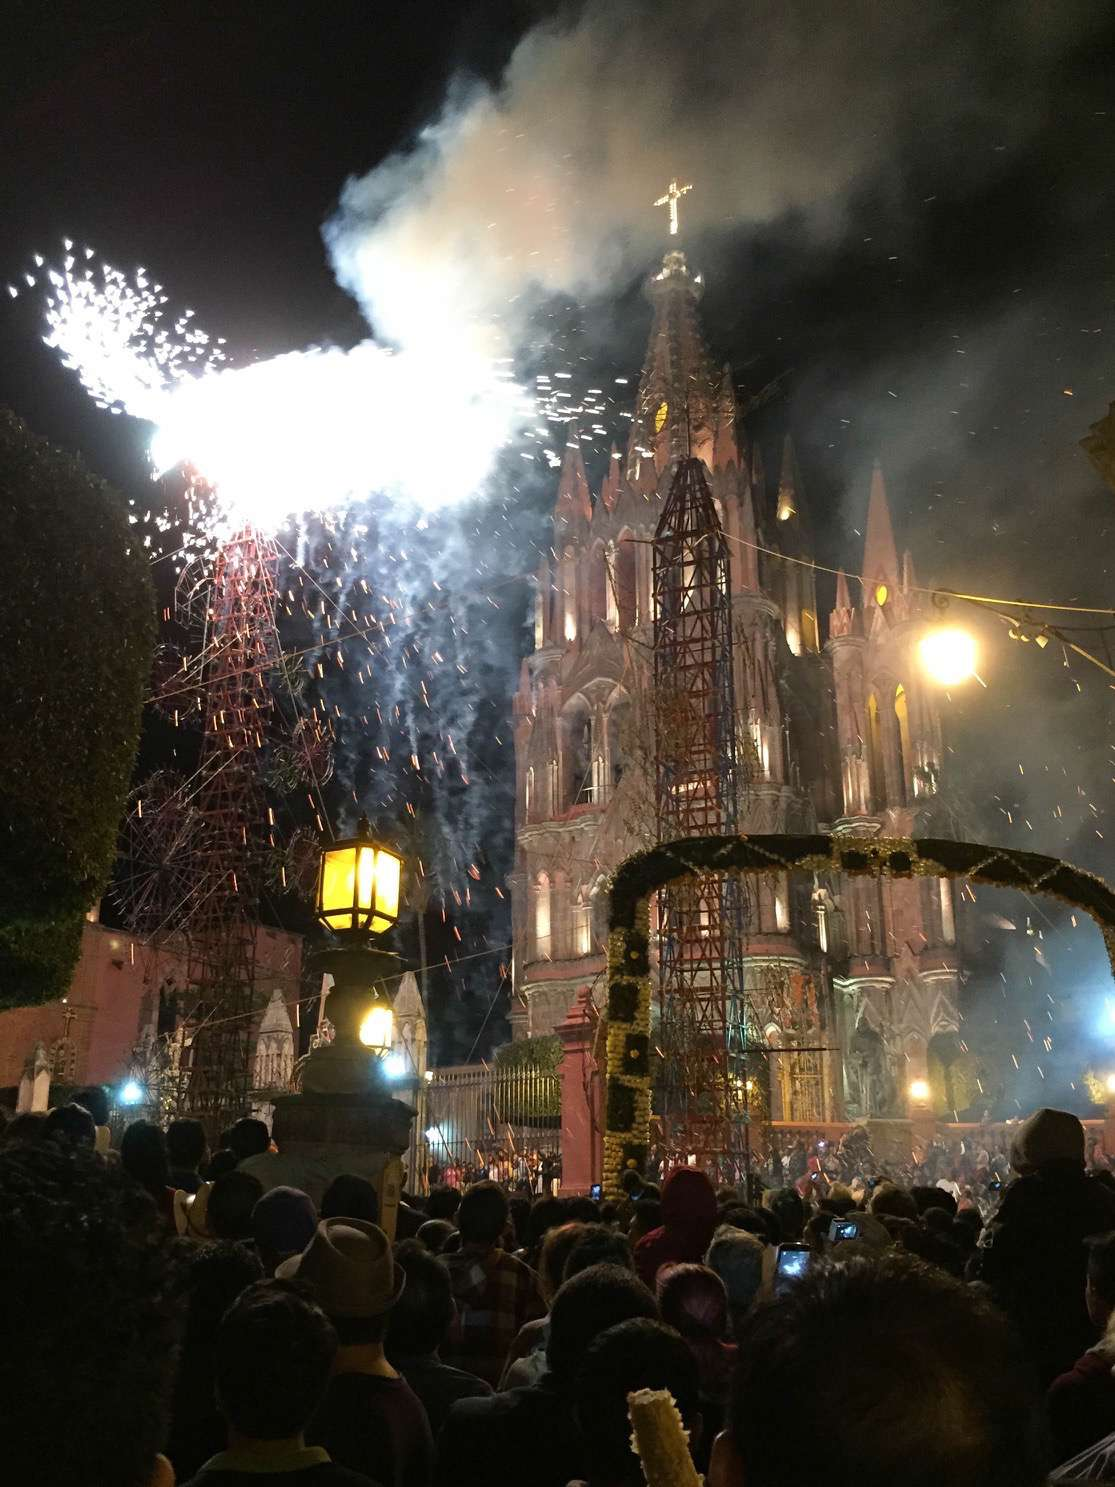 In San Miguel de Allende, fireworks are best viewed up close.